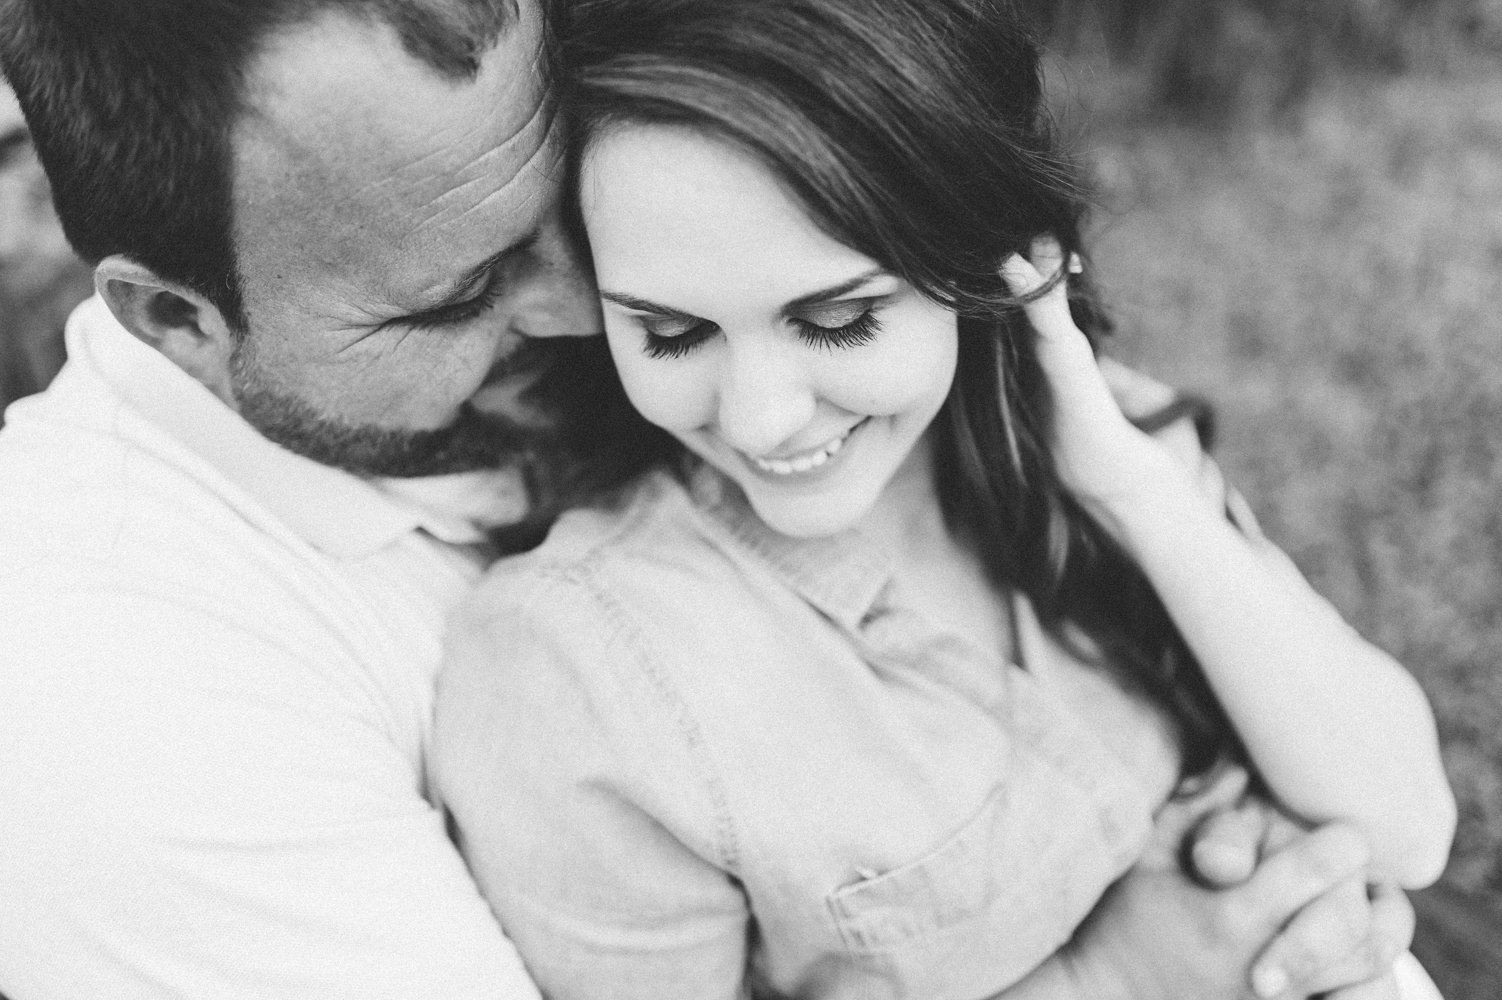 engagement-portraits-christina-forbes-photography-36